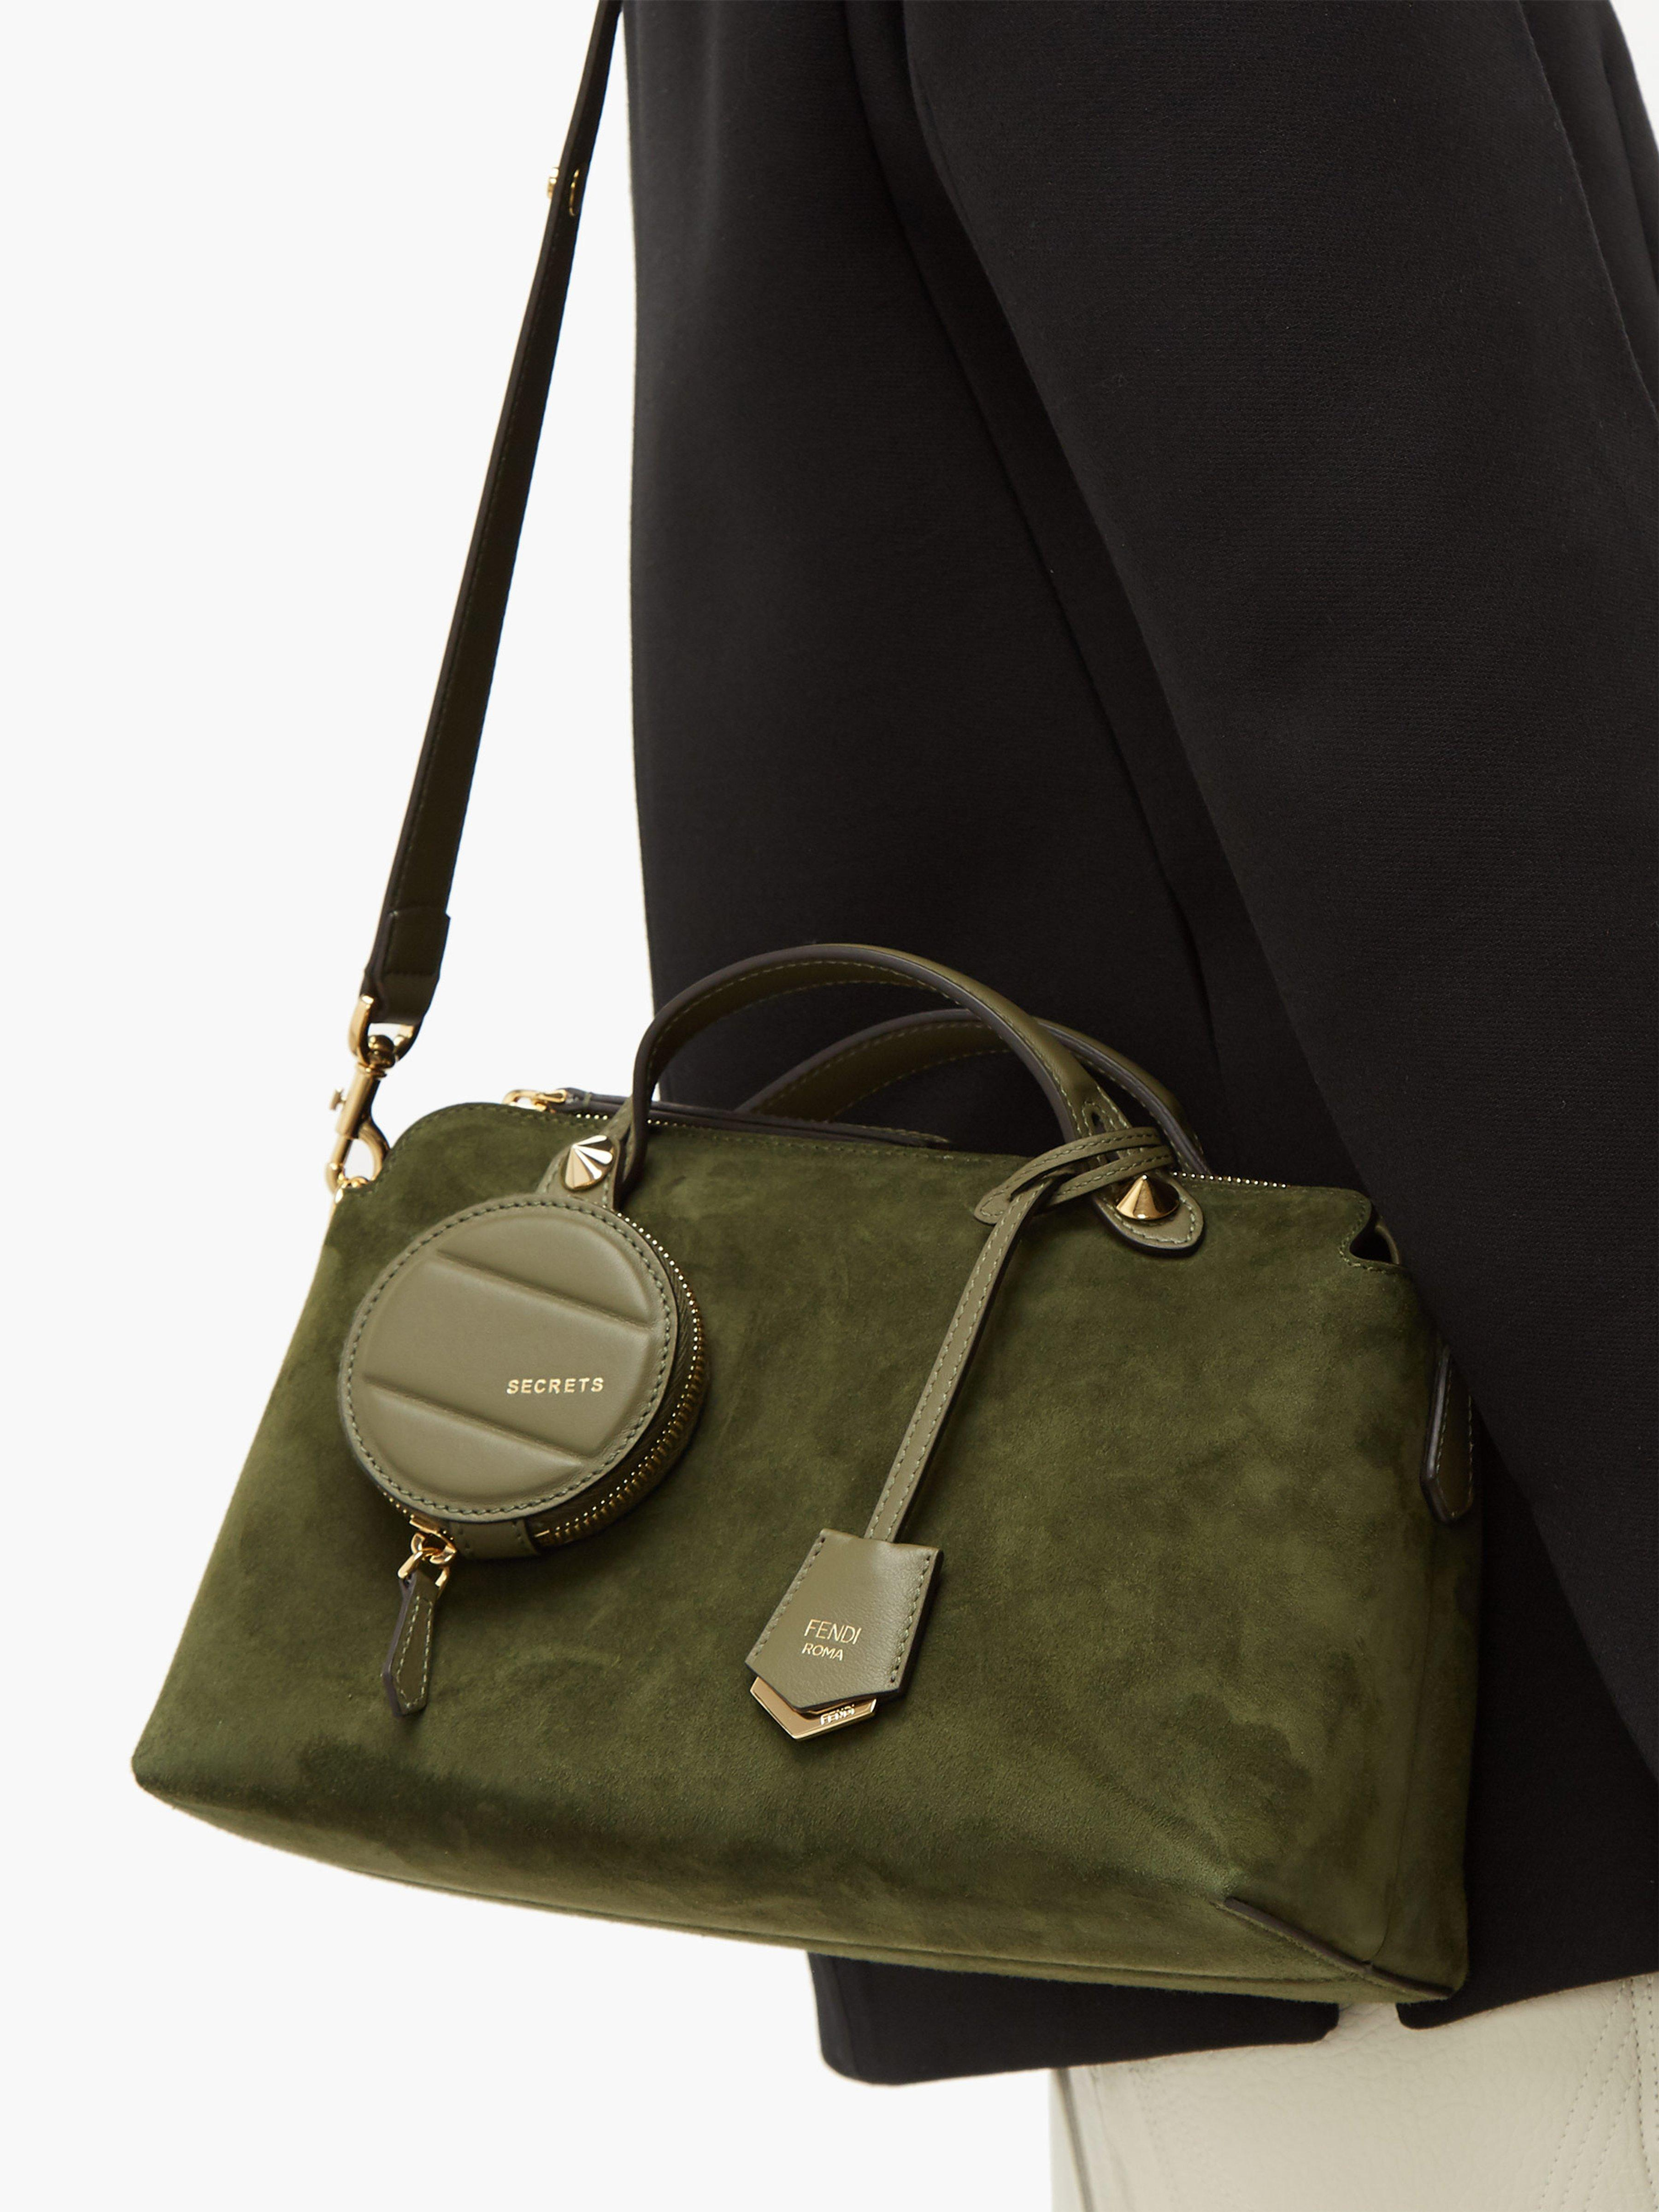 15d33cec5270 Fendi By The Way Suede Shoulder Bag in Green - Lyst